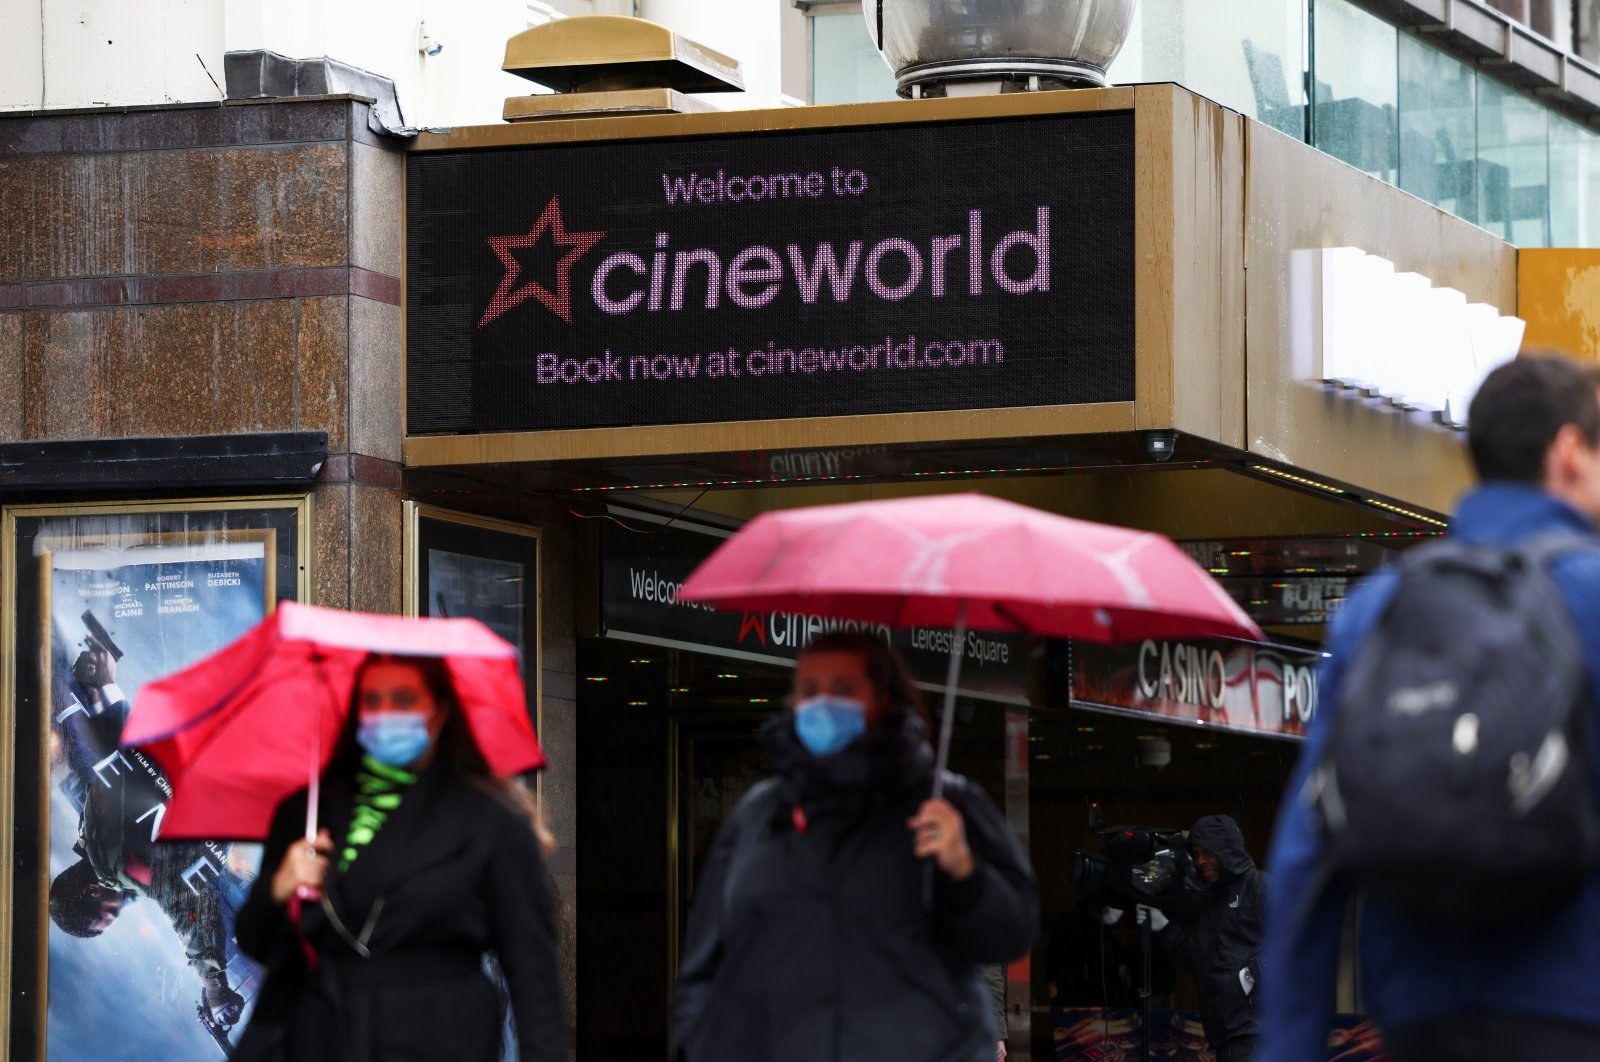 People walk past a Cineworld in Leicester's Square, amid the coronavirus disease (COVID-19) outbreak in London, Britain, Oct. 4, 2020. (Reuters Photo)